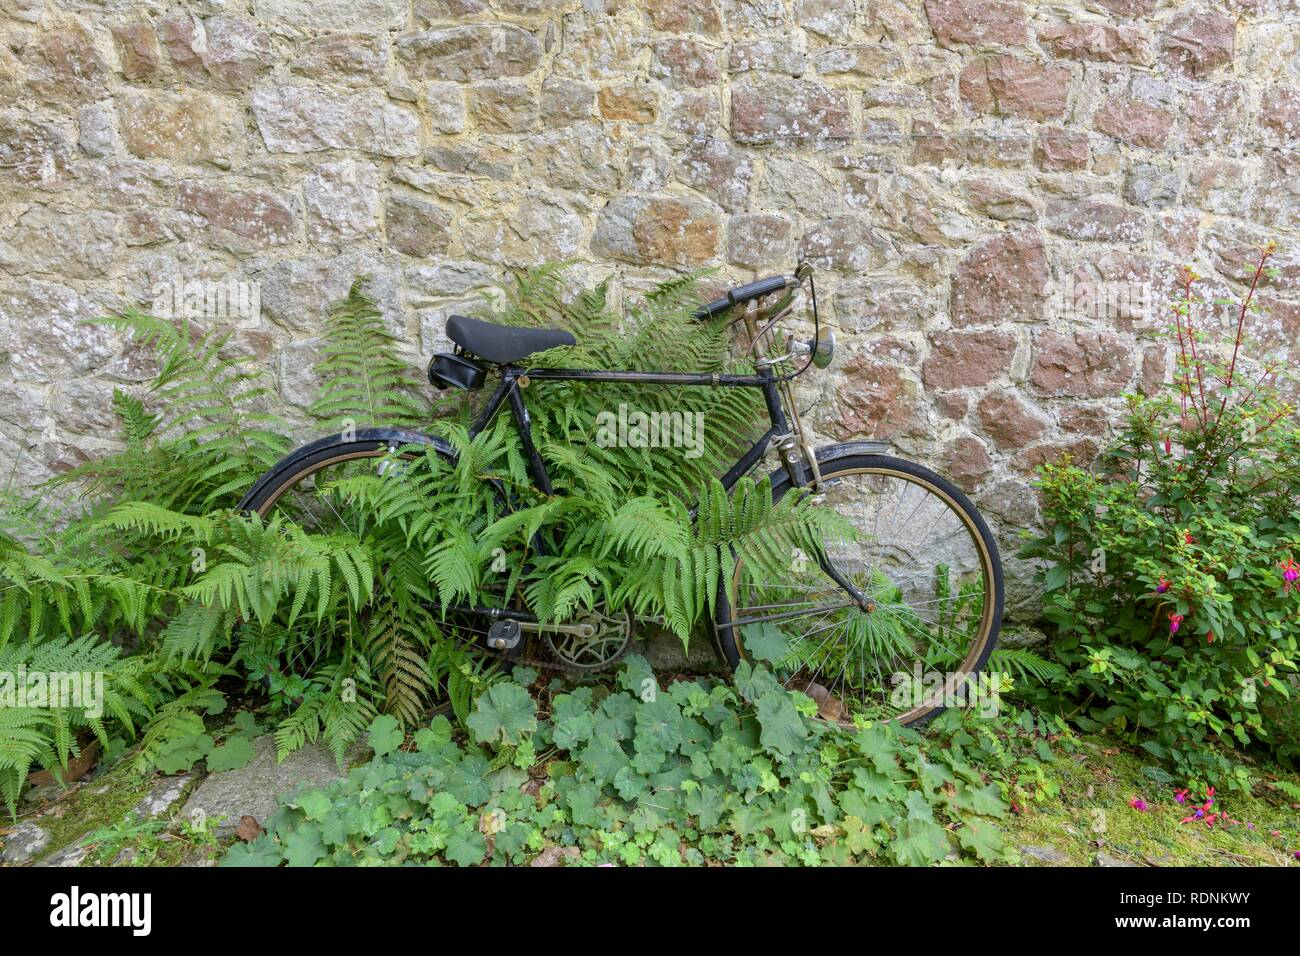 Bicycle and fern, moated castle Ightham Mote, Tonbridge and Malling, England, United Kingdom - Stock Image